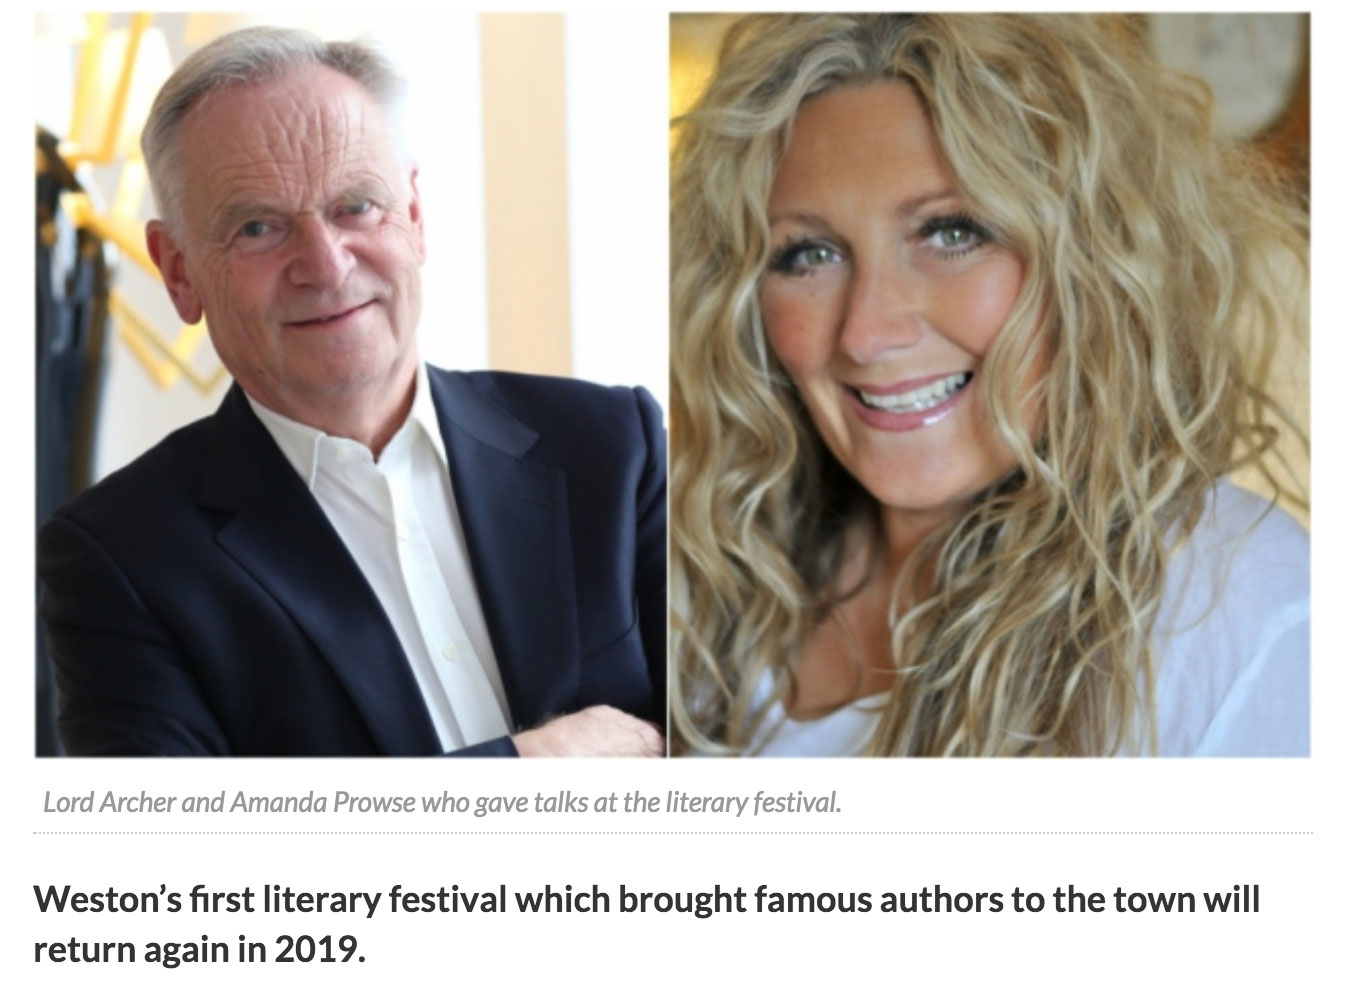 Literary Festival to Return in 2019.